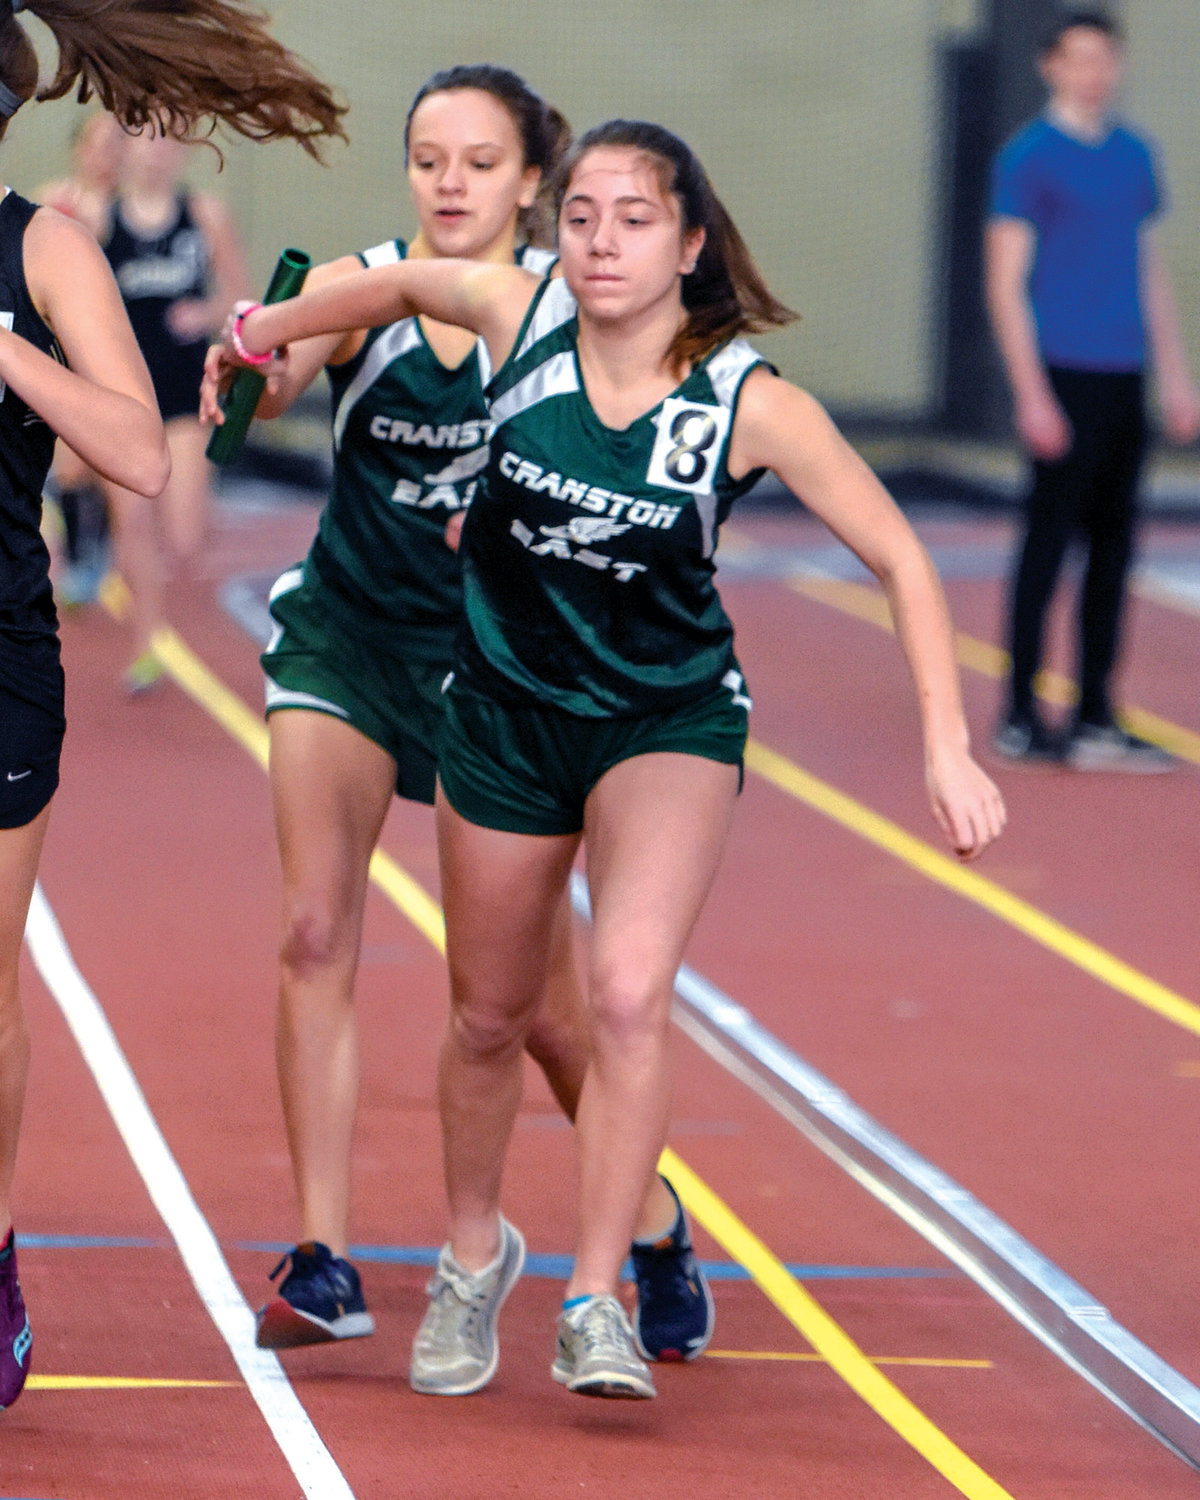 ON THE RIGHT TRACK: Cranston East's Michelle Diaz-Arajuo and Eva Caron work together during a relay for the Thunderbolts in the Class Championships last week in Providence.